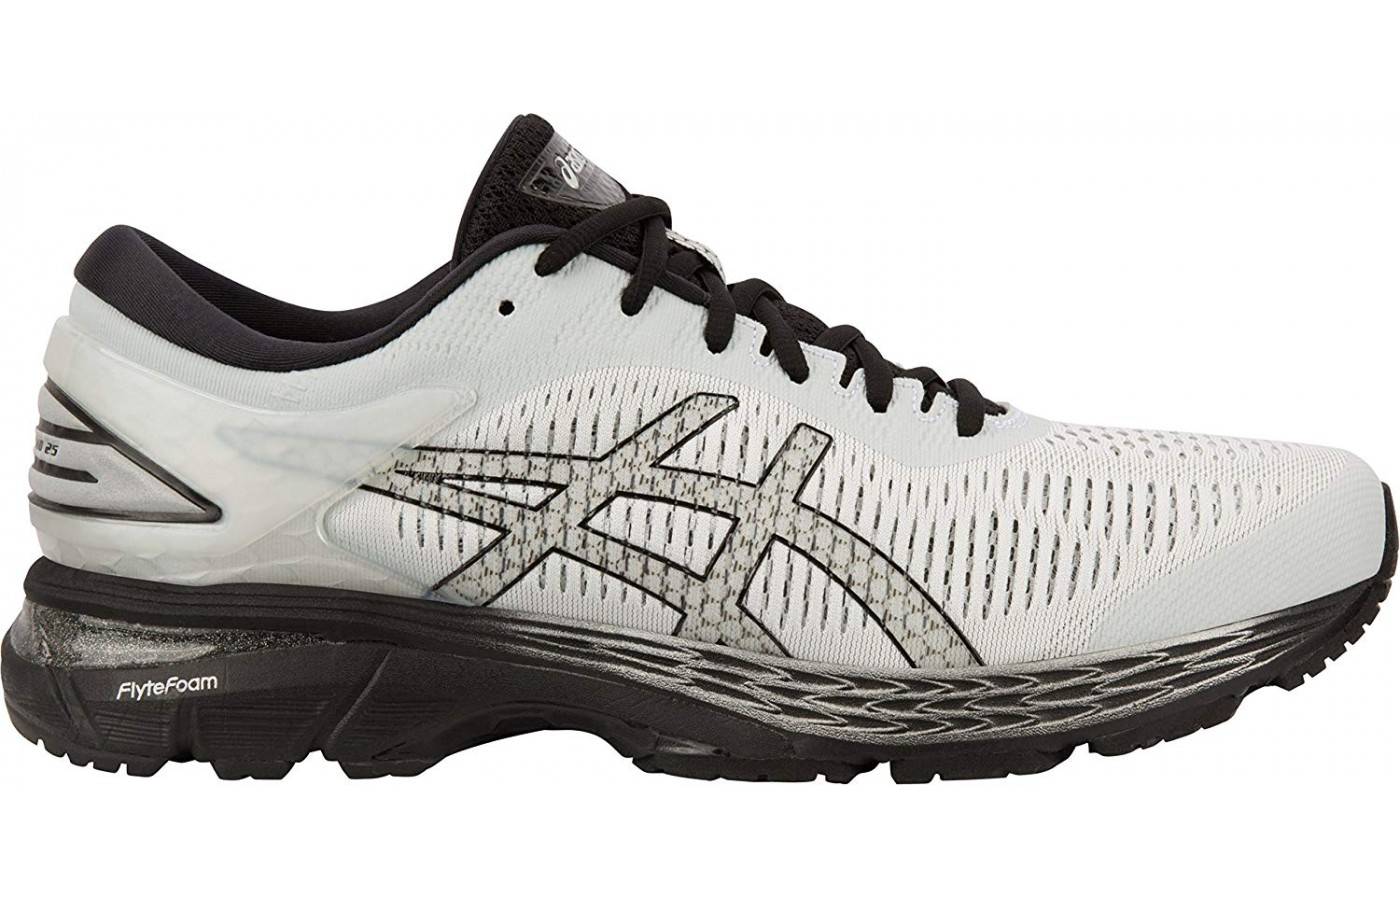 Asics Gel Kayano 25 Outsole